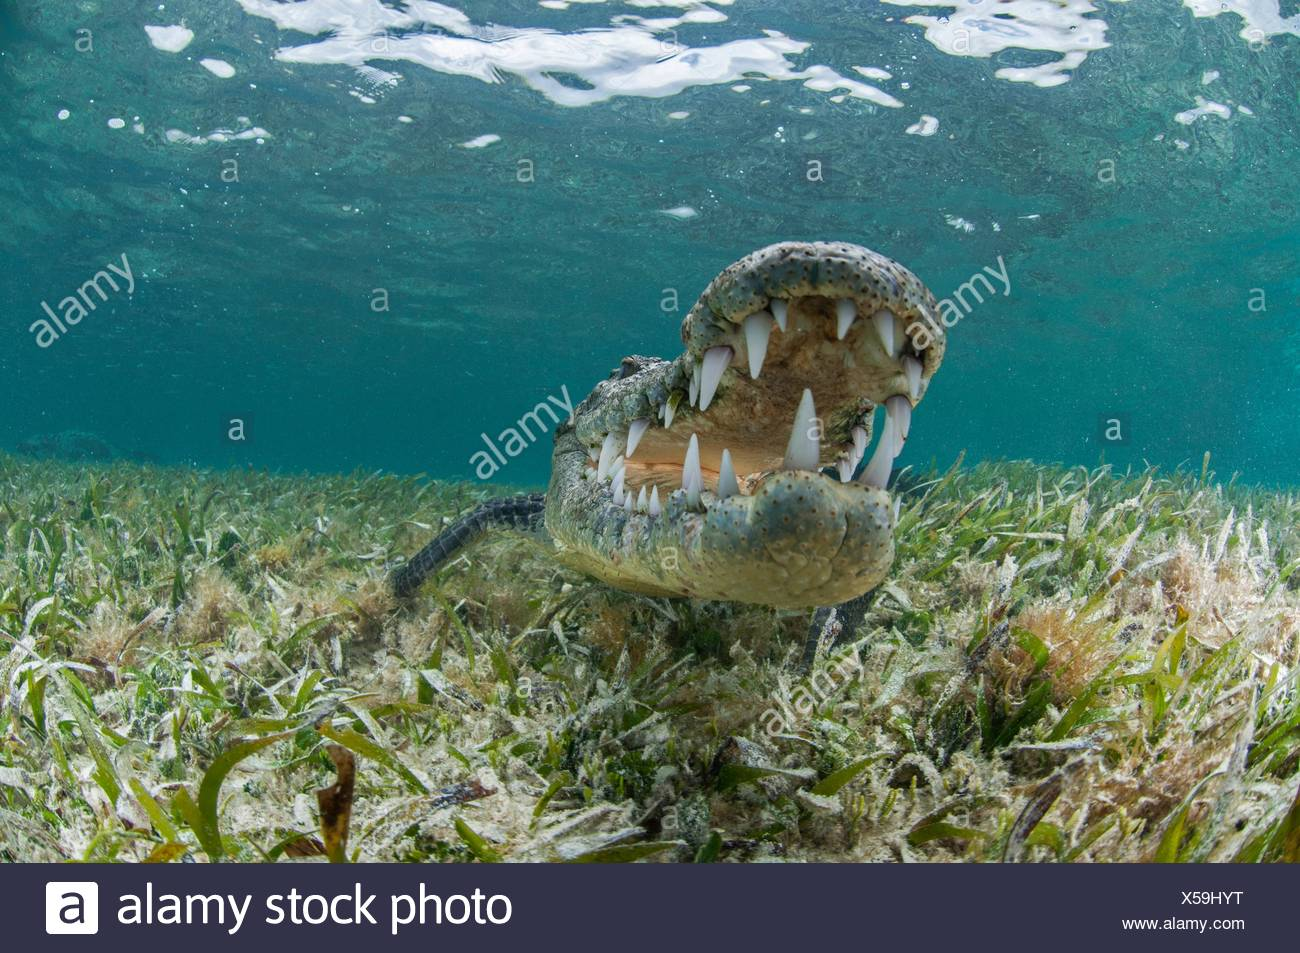 Underwater front view of crocodile on seagrass, open mouthed showing teeth, Chinchorro Atoll, Quintana Roo, Mexico - Stock Image